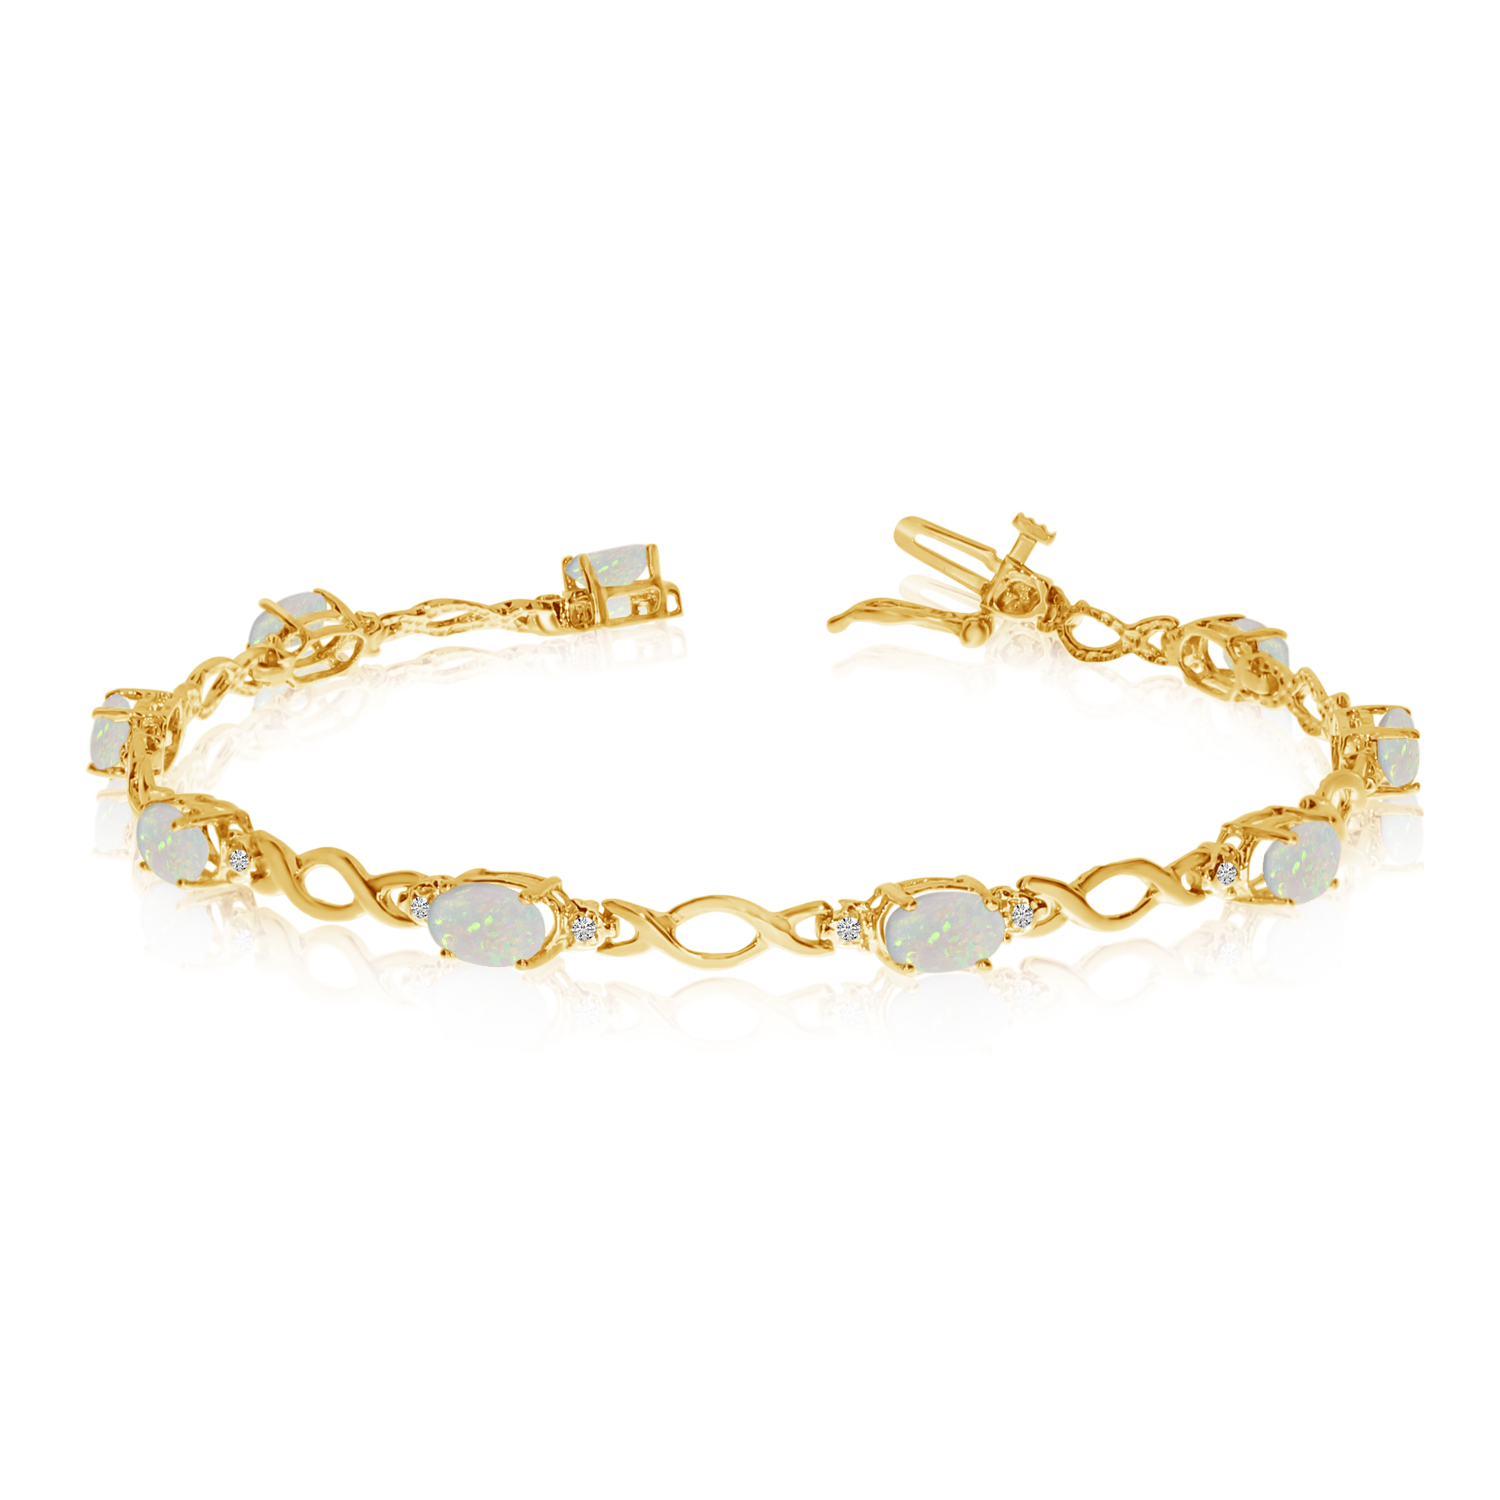 10K Yellow Gold Oval Opal and Diamond Bracelet by LCD